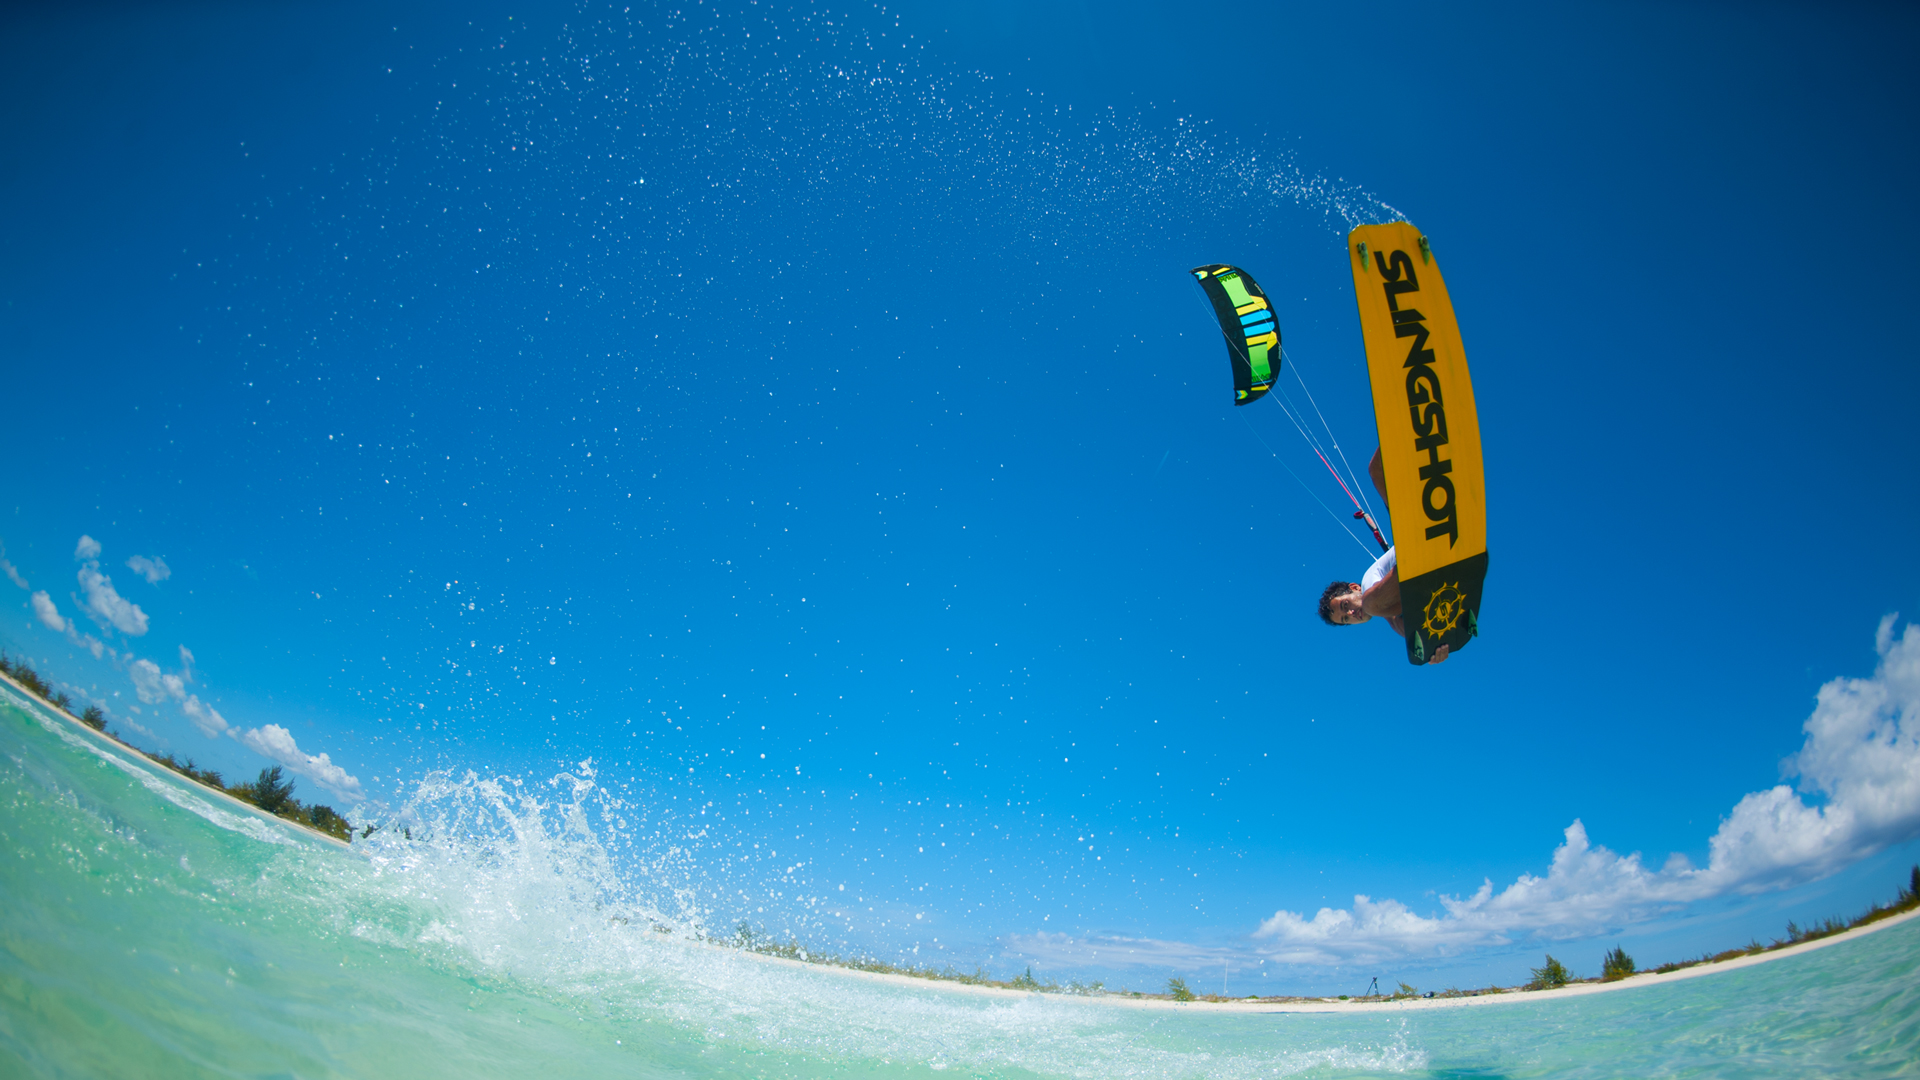 kitesurf wallpaper image - Kiteboarder Victor Hays with a jump and tail grab on the 2016 Slingshot Rally kite and Misfit kiteboard. - in resolution: High Definition - HD 16:9 1920 X 1080